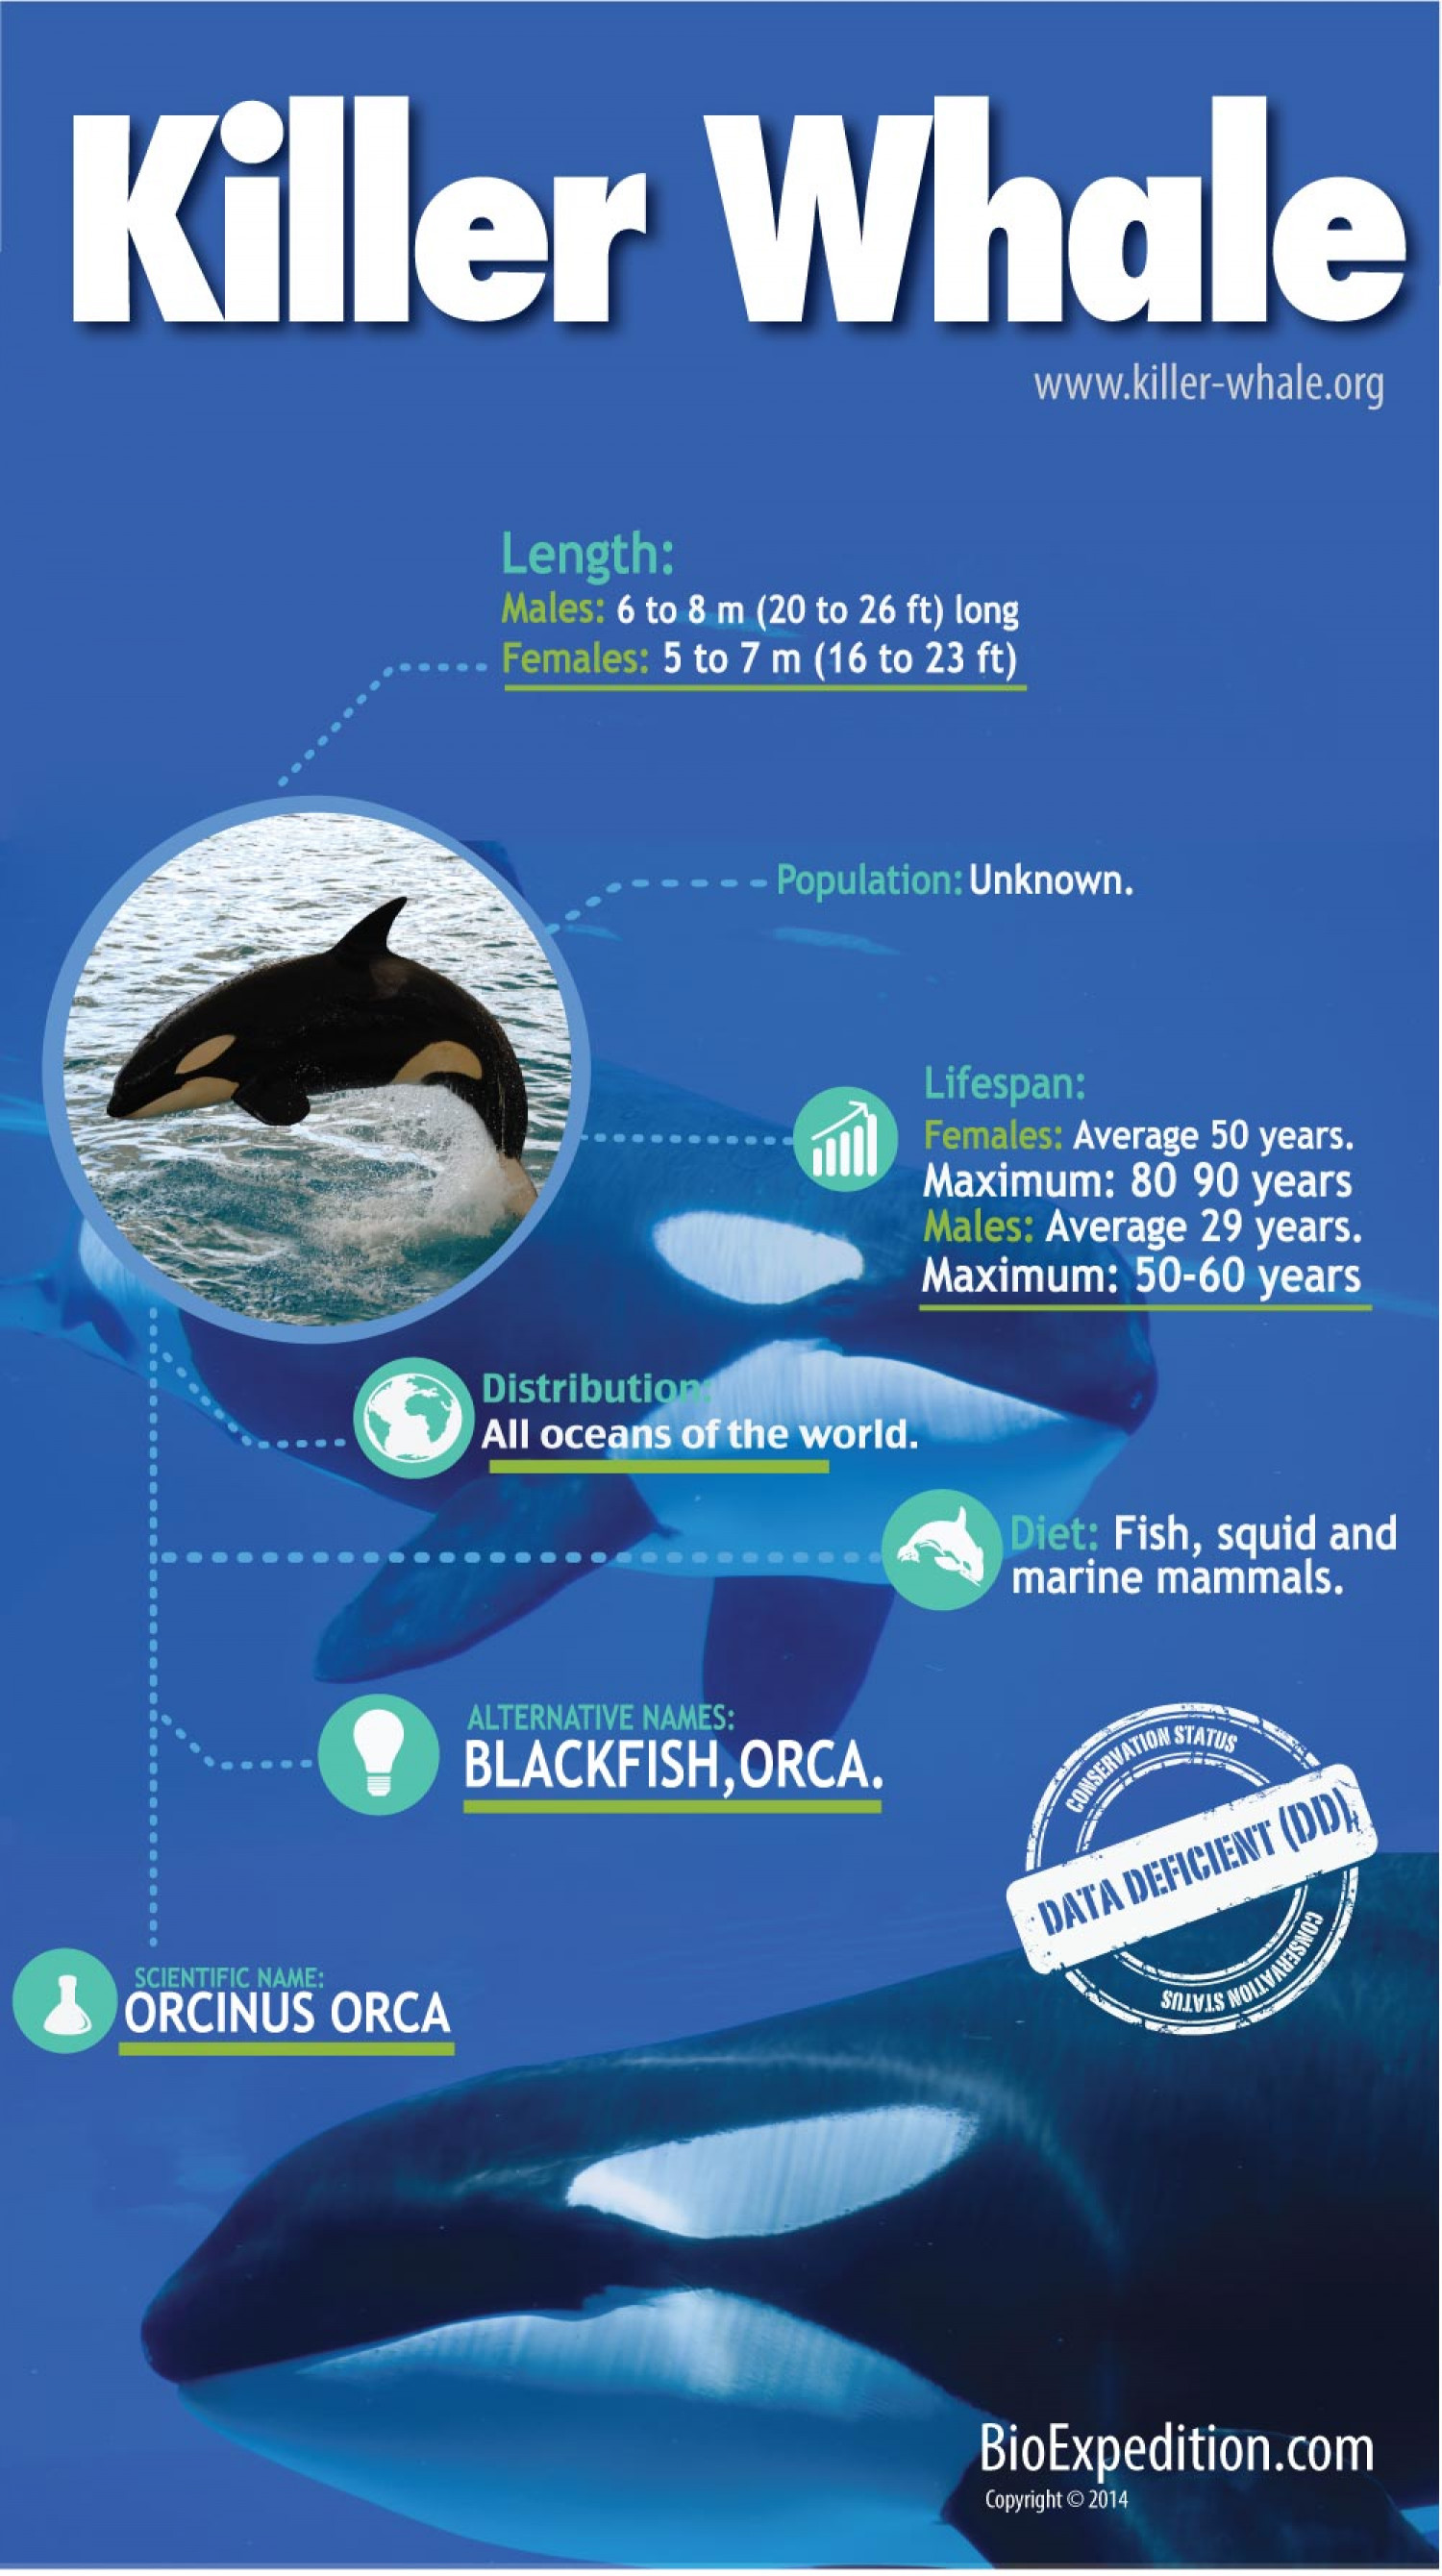 Killer Whale Infographic